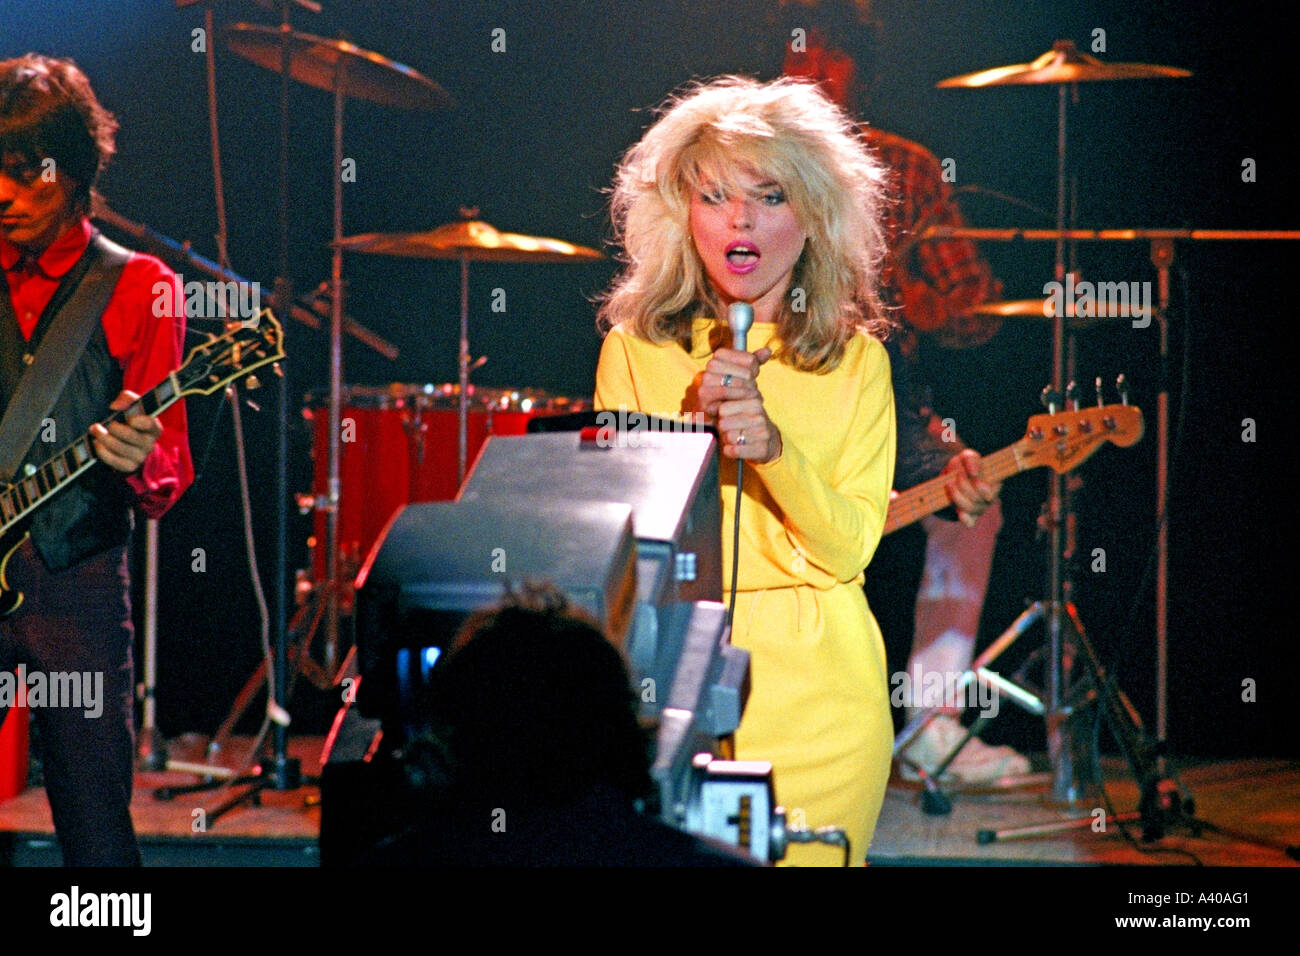 Debbie Harry of pop group Blondie performing Picture This PER0120 Stock Photo